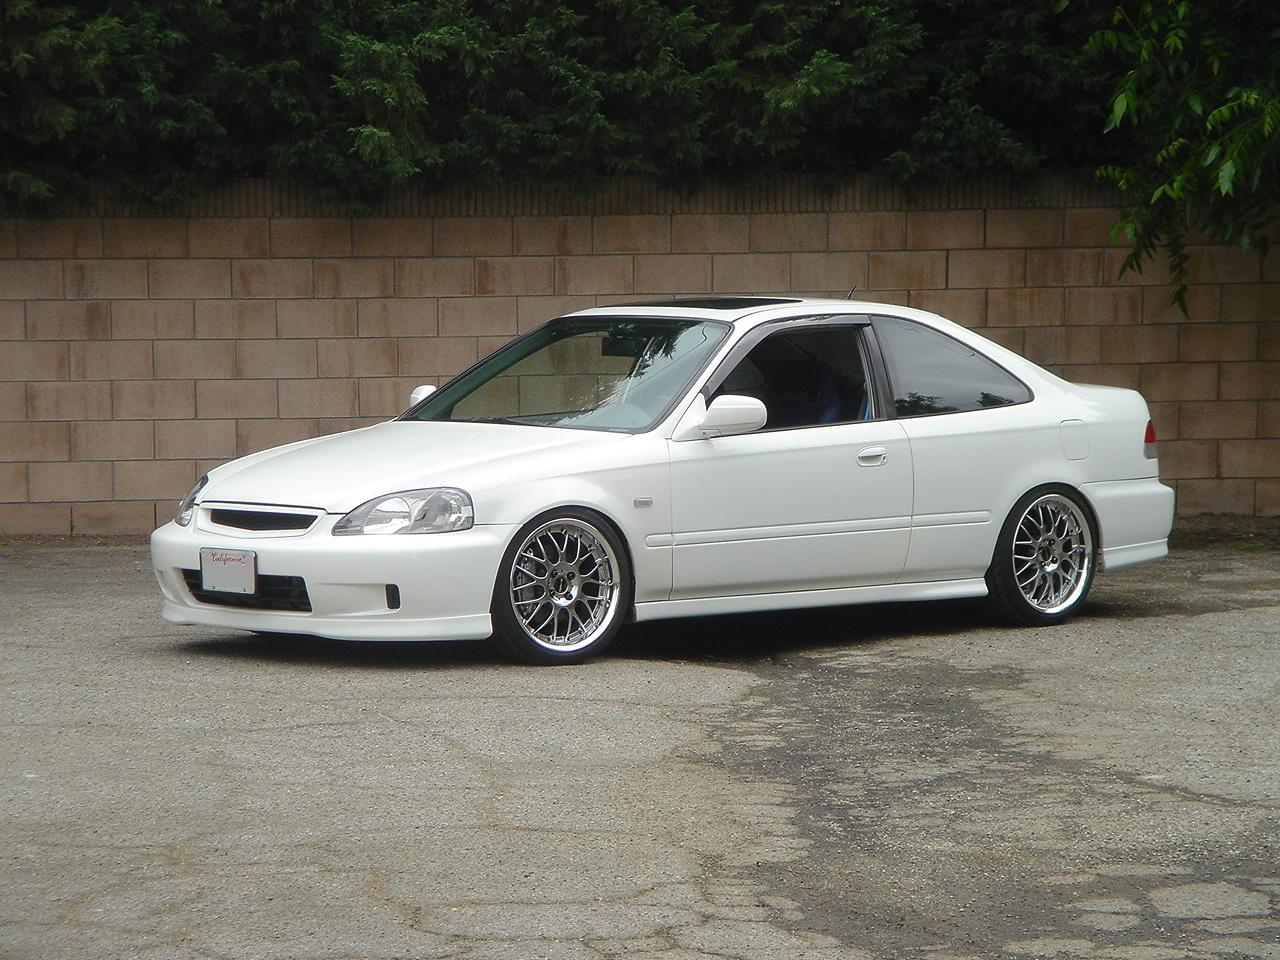 Elegant 2000 Honda Civic Aftermarket Wheels